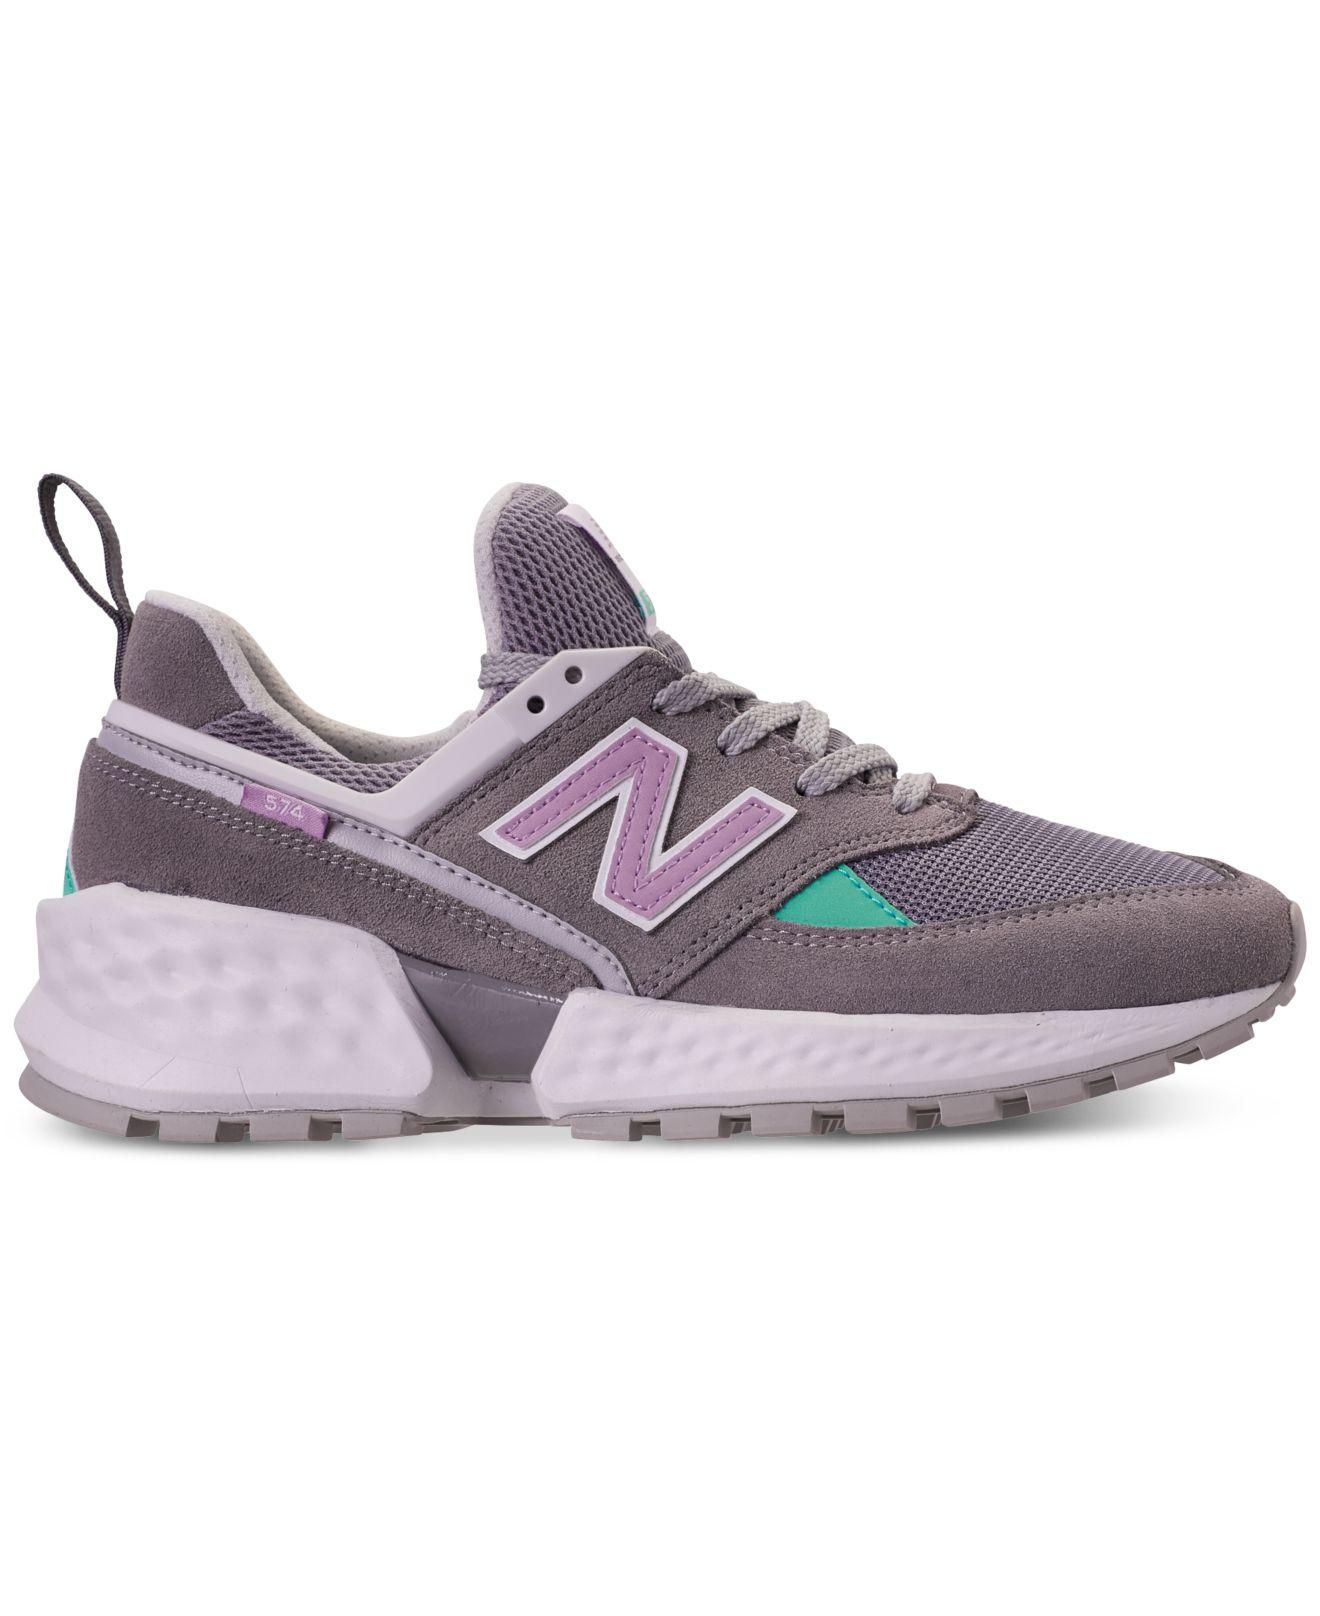 a724768d36061 Lyst - New Balance 574 V2 Casual Sneakers From Finish Line in Purple